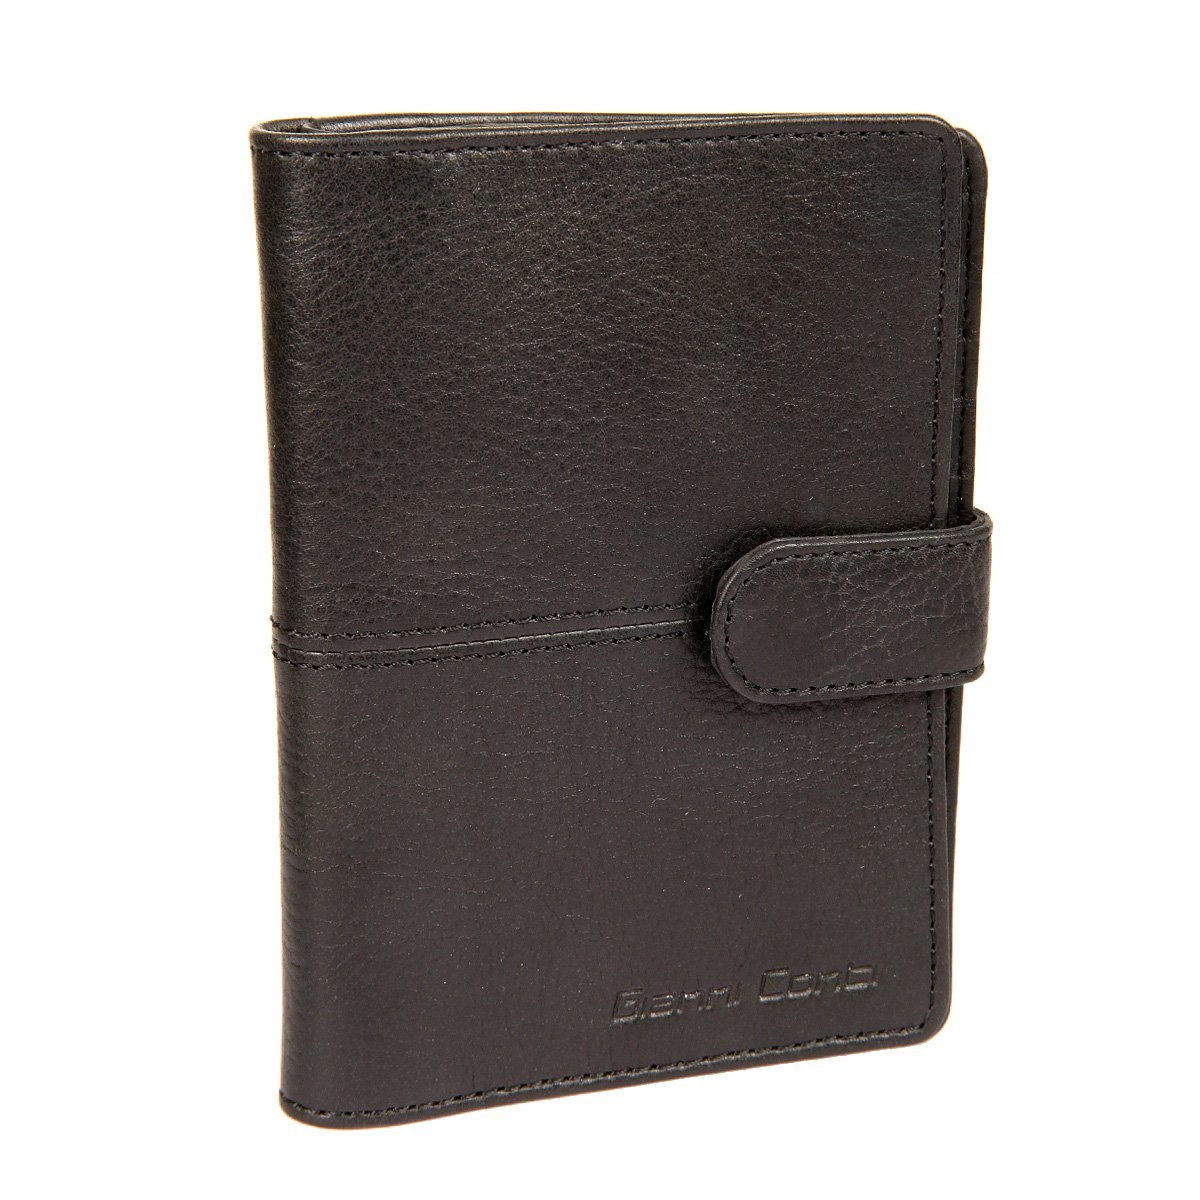 Passport cover and avtodokumentov Gianni Conti 1137458 black new 2 fold folio pu leather stand cover case for onda v10 3g 4g call phone 10 1inch tablet pc black and white color gift